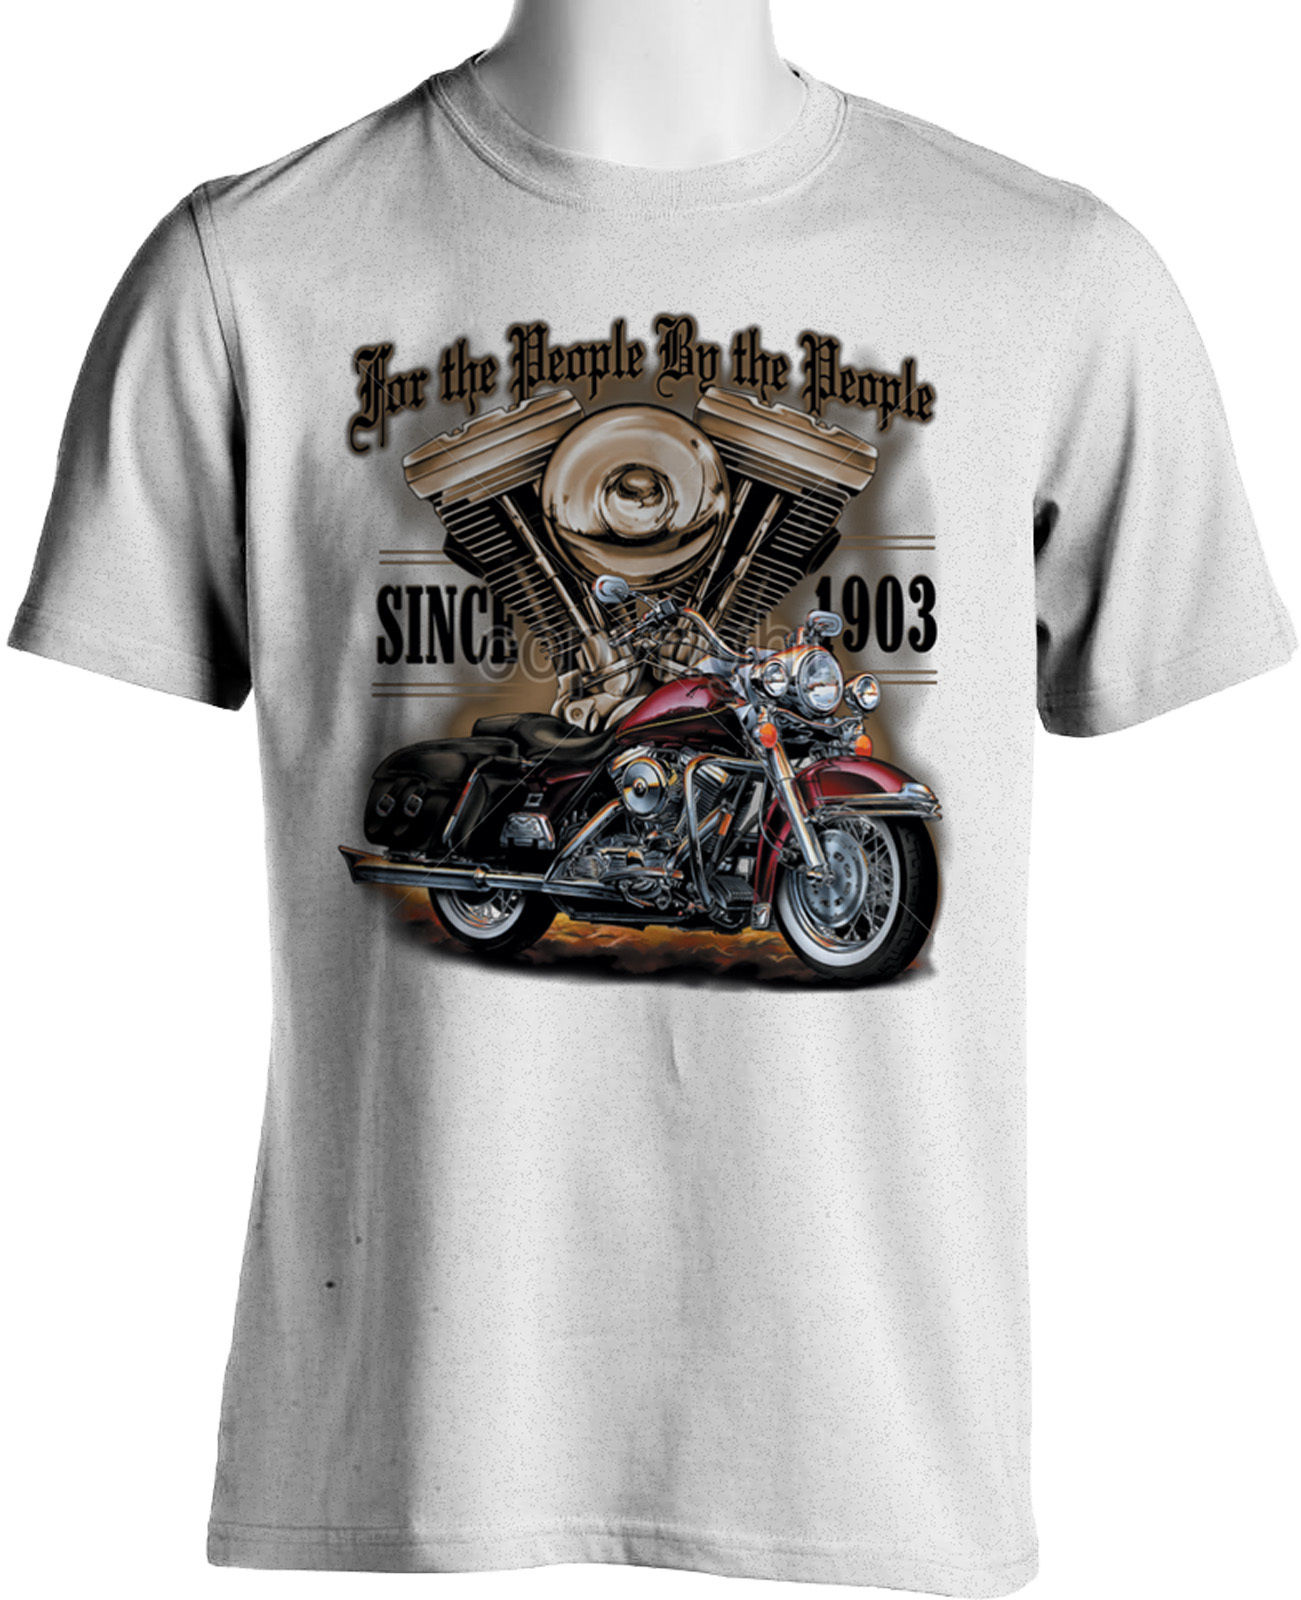 2019 New Summer High Quality Tee Shirt For The People Made By Americans Since 1903 Biker T-Shirts American Motorcycles T-shirt